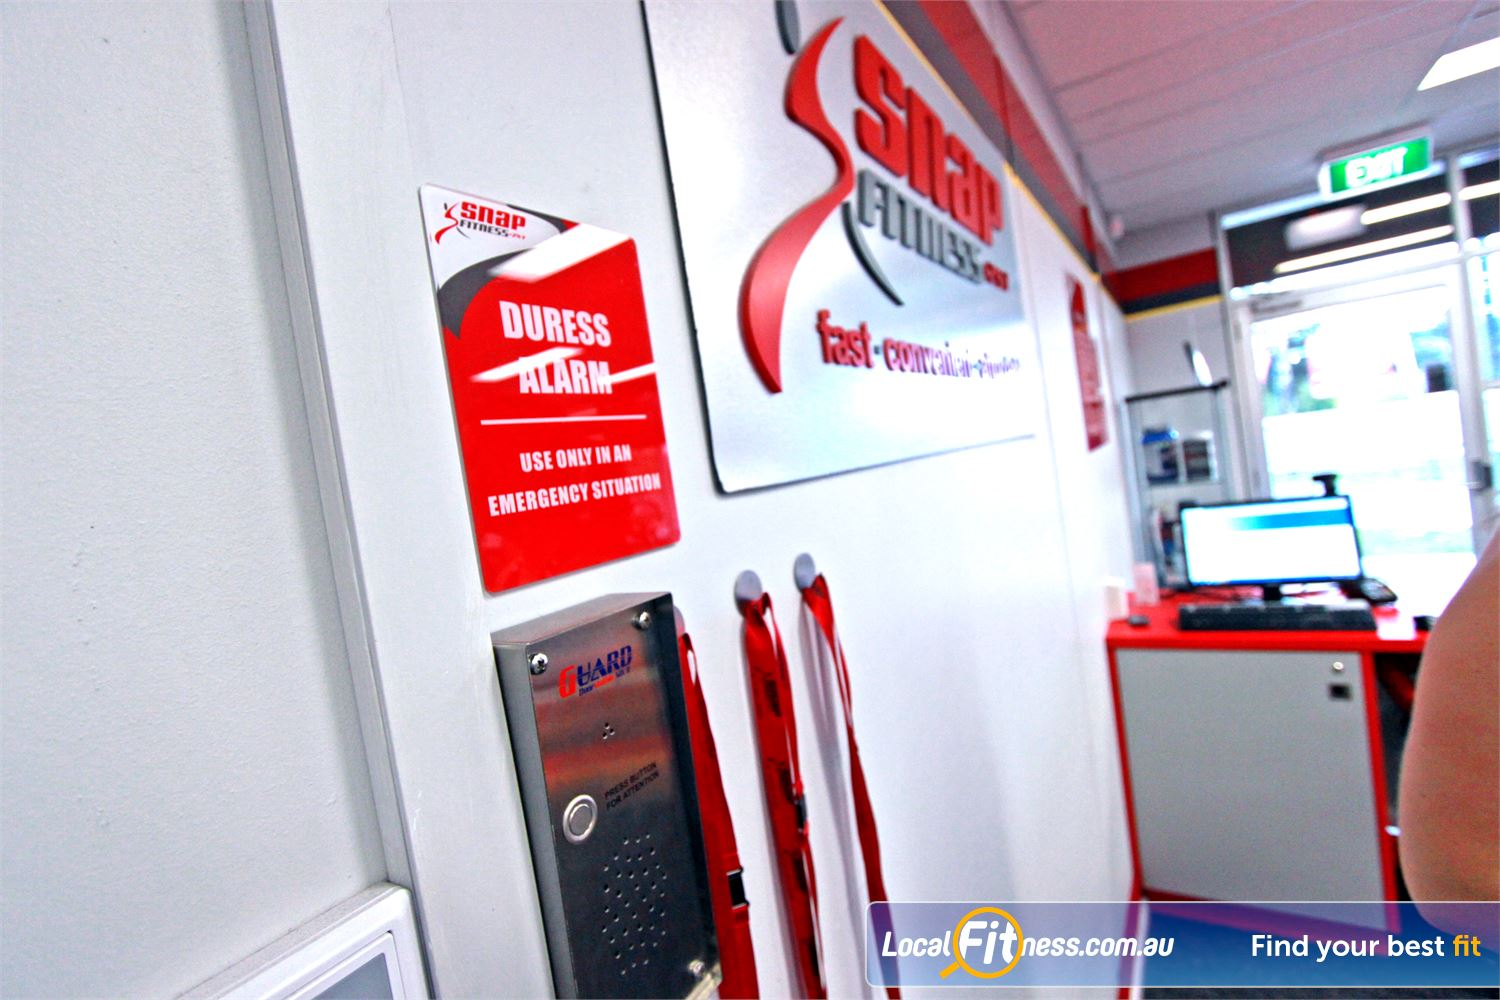 Snap Fitness Jindalee 24 hour safety and security makes your workout hassle free.